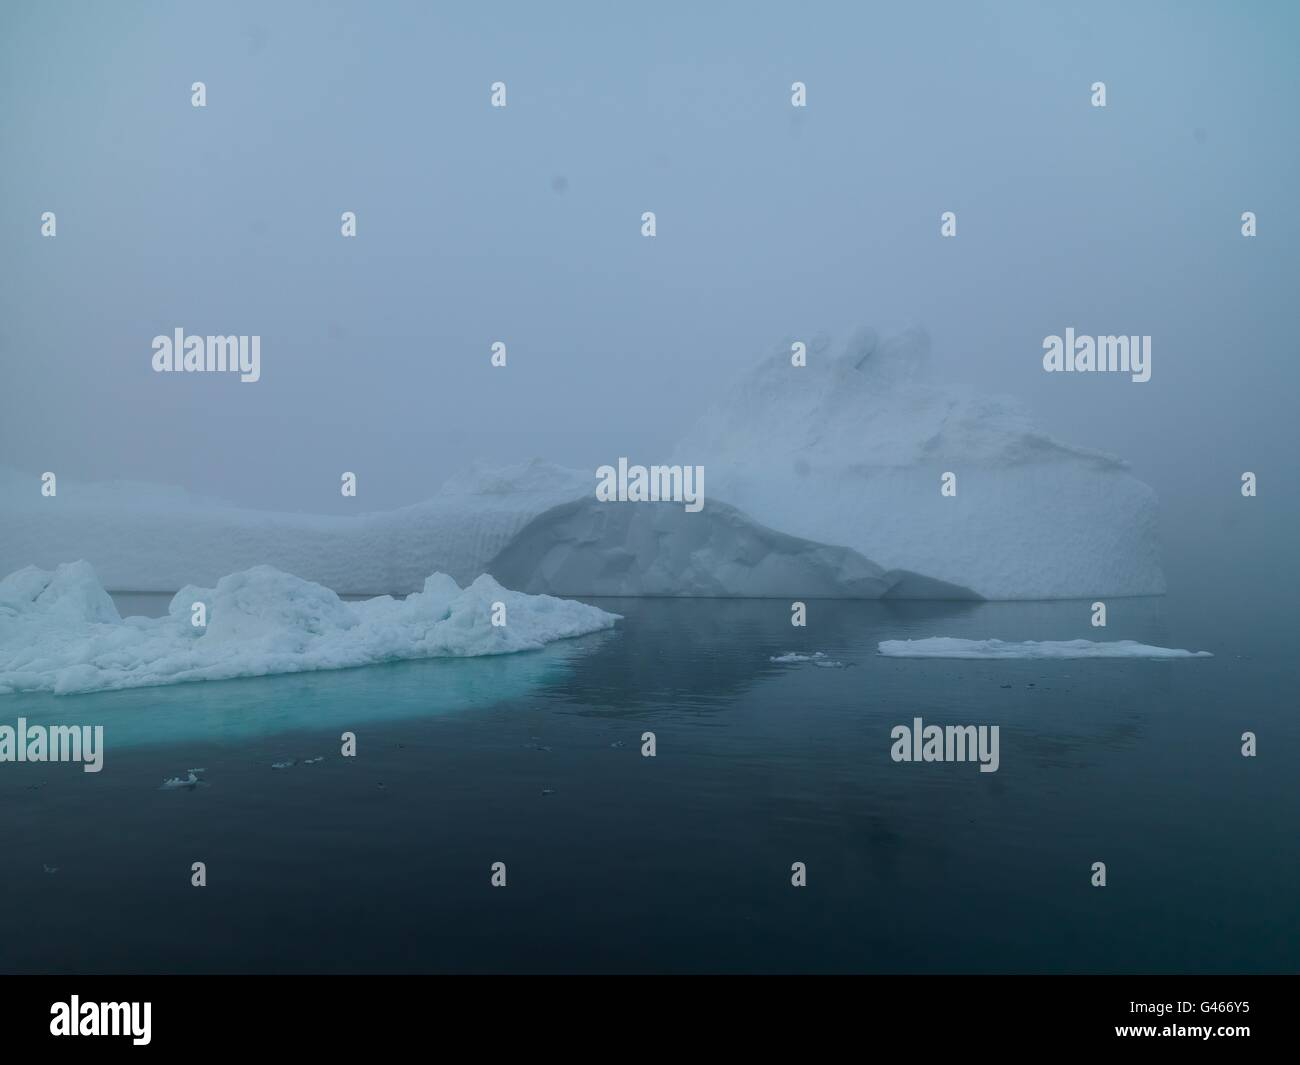 Huge icebergs are on the arctic ocean at Ilulissat ice fiord, Greenland - Stock Image